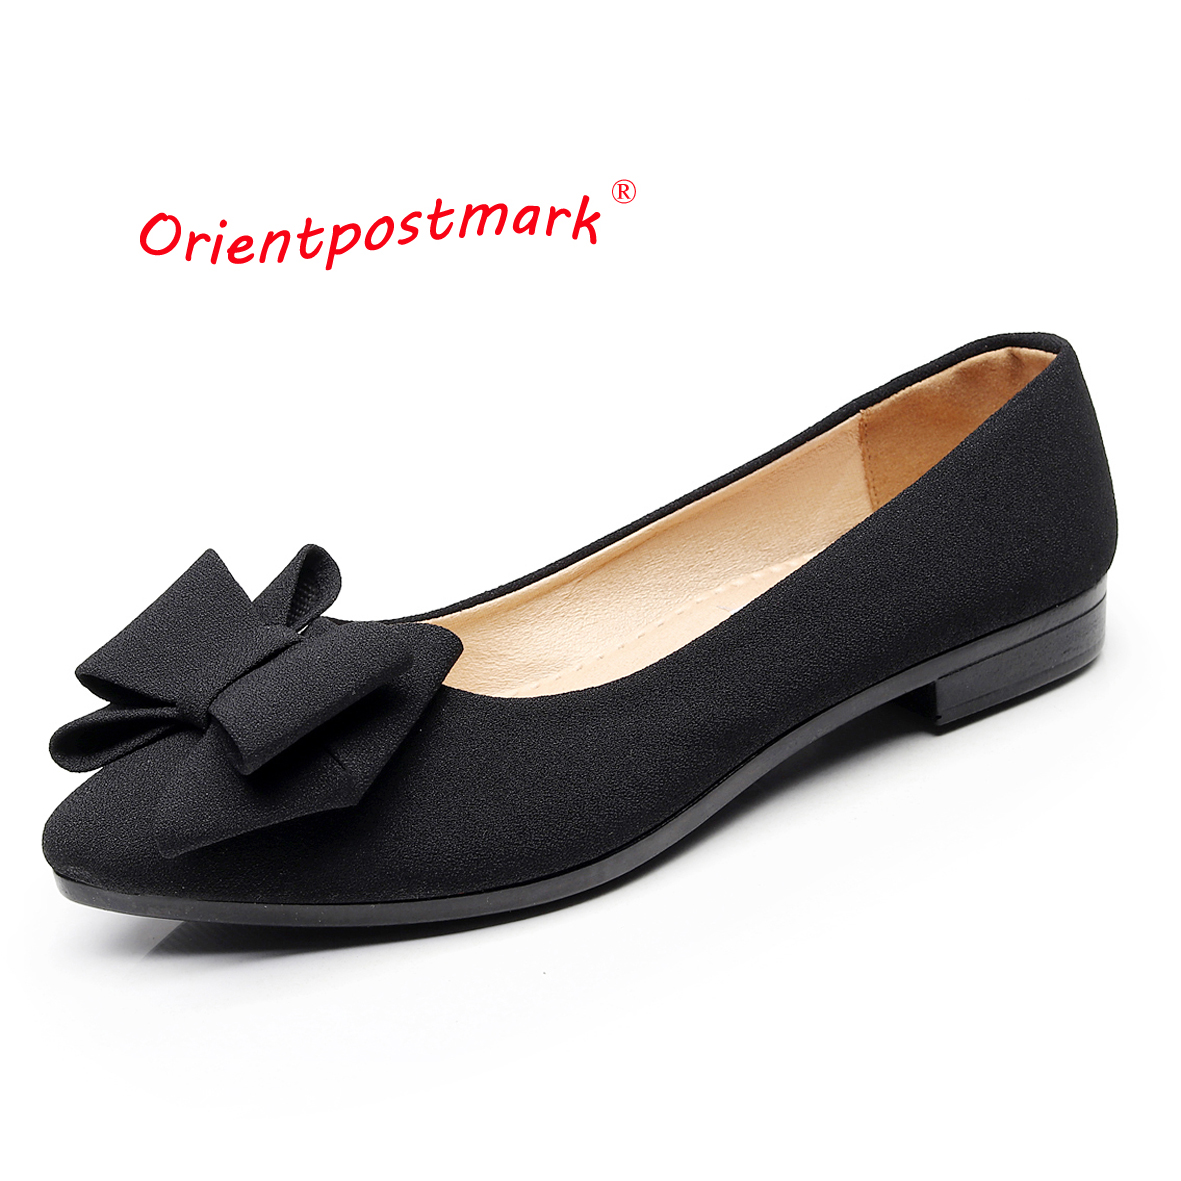 Orientpostmark Women's Pregnant Flats Boat Shoes Women Flats Shoes for Work Cloth Sweet Loafers Slip On Women Ballet Flats Shoes women shoes women ballet flats shoes for work flats sweet loafers slip on women s pregnant flat shoes oversize boat shoes d35m25